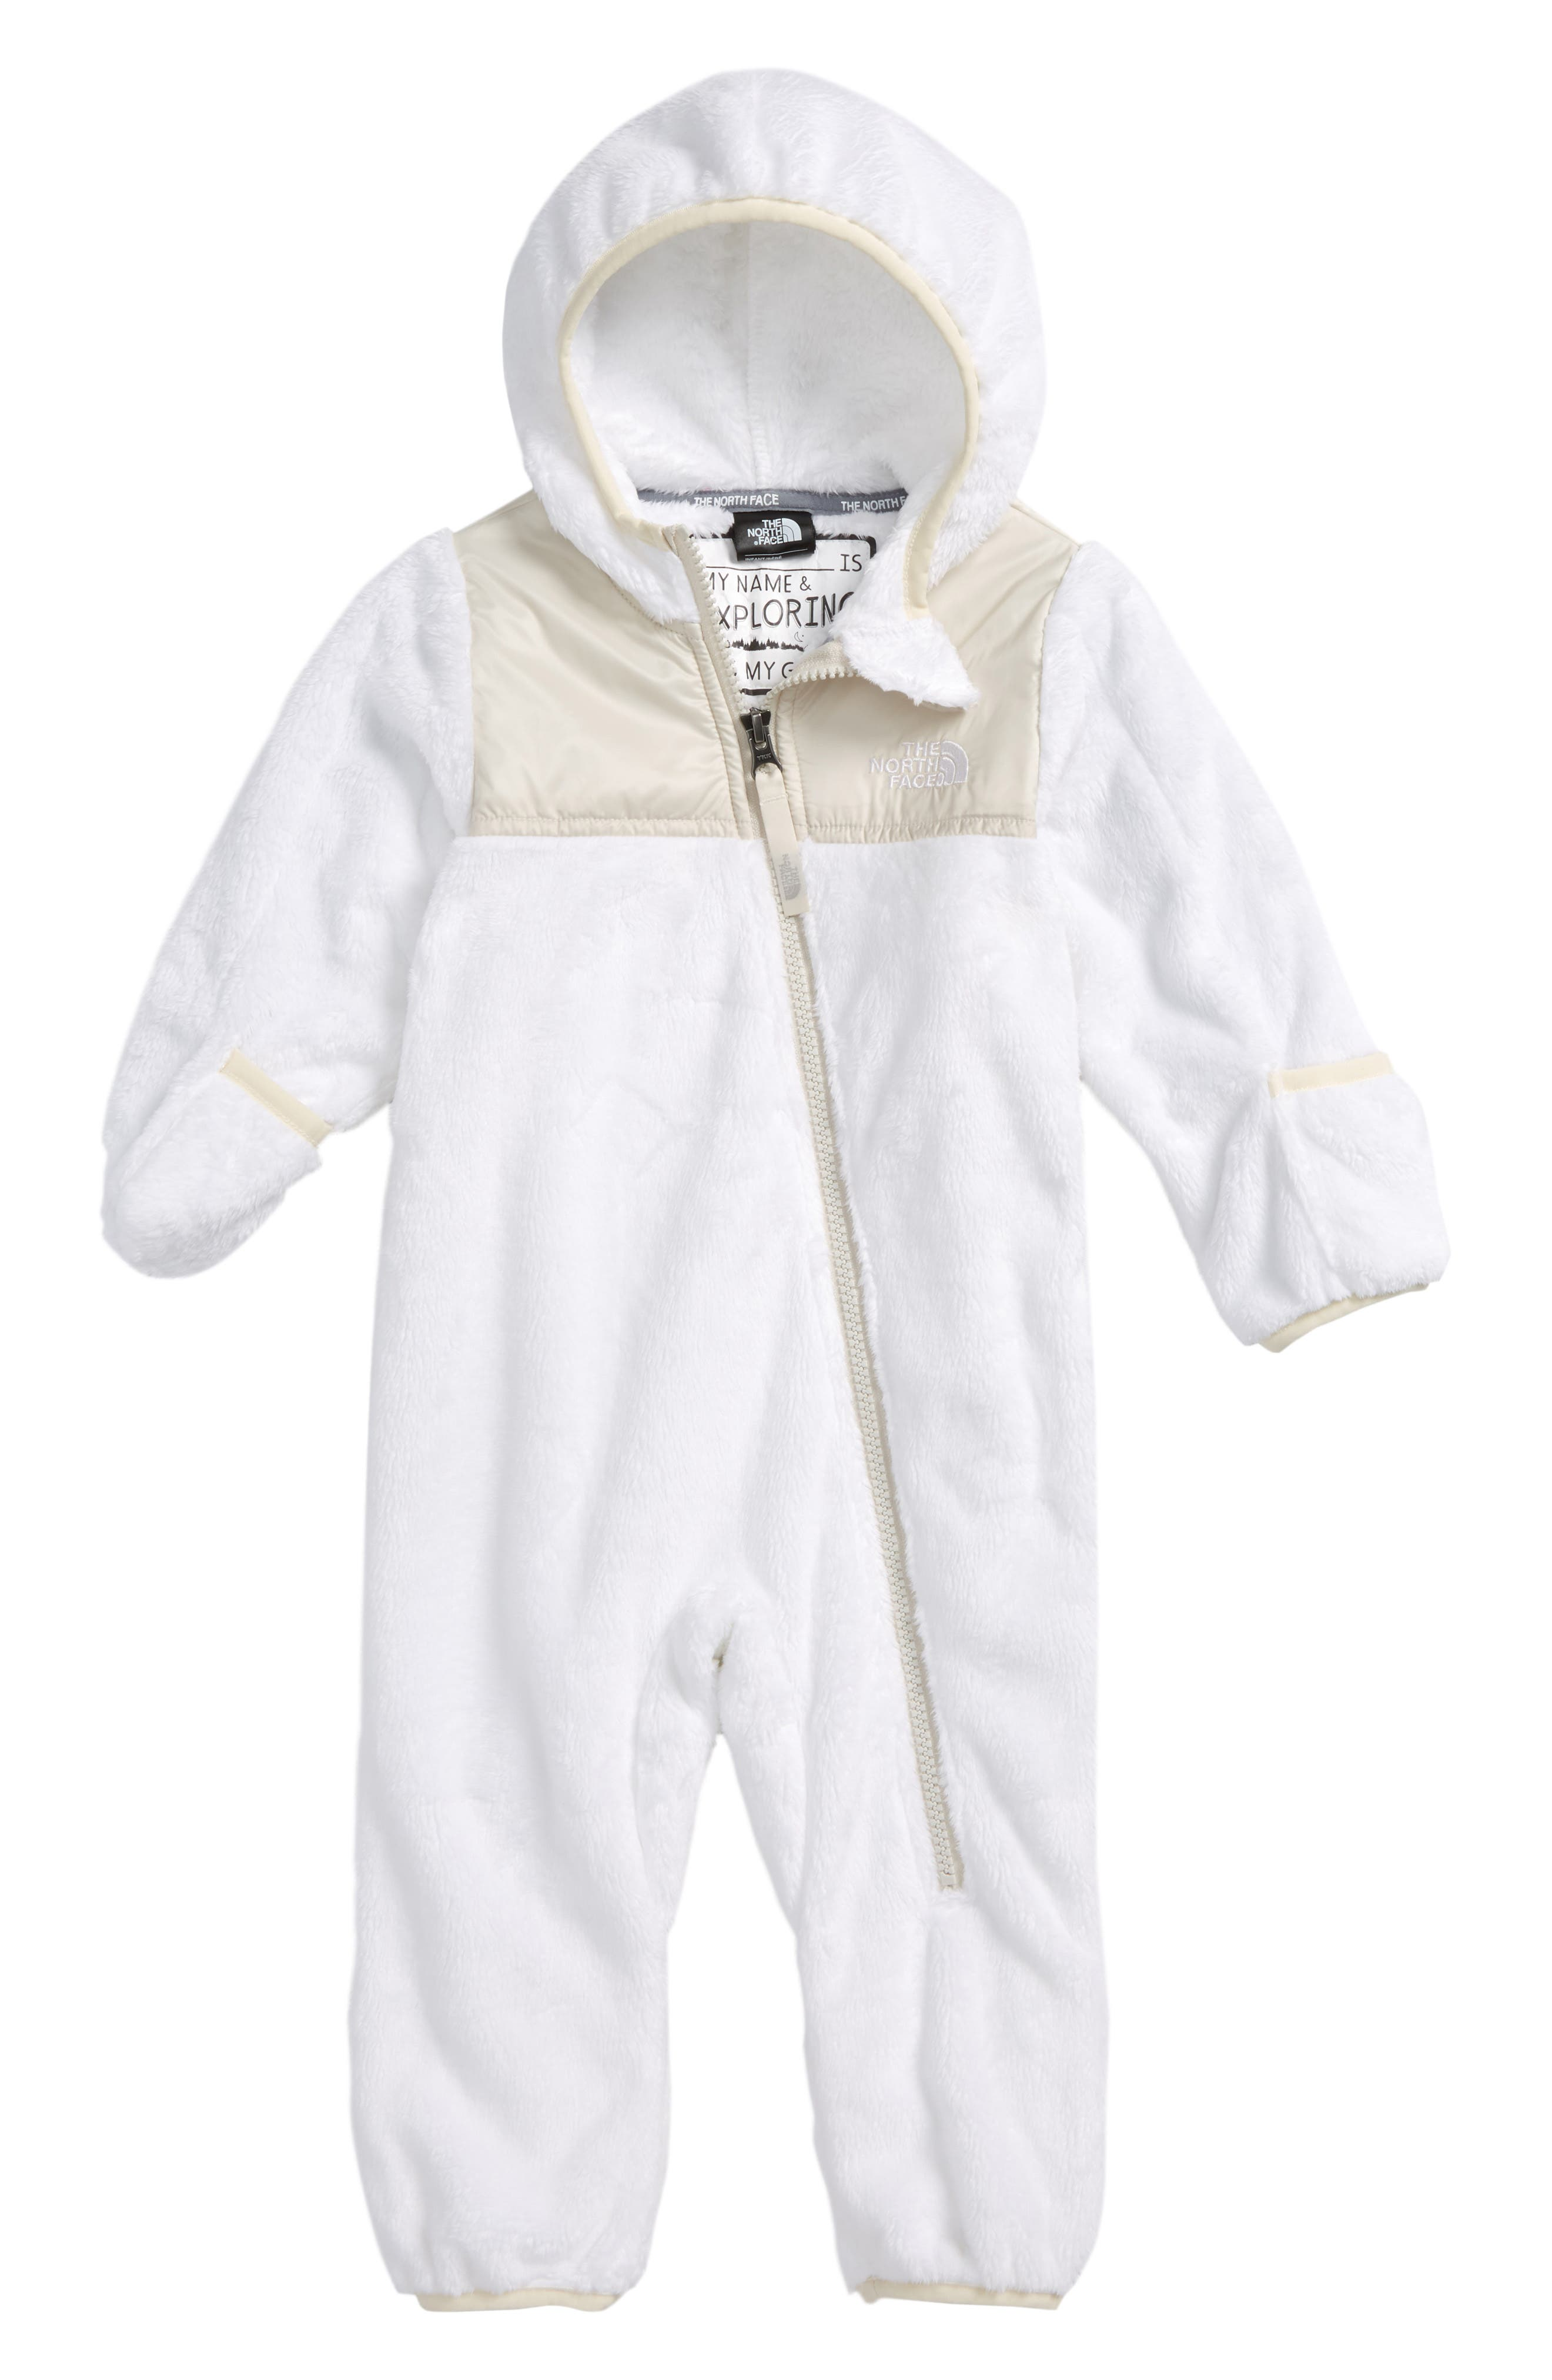 THE NORTH FACE,                             Oso Hooded Fleece Romper,                             Main thumbnail 1, color,                             100